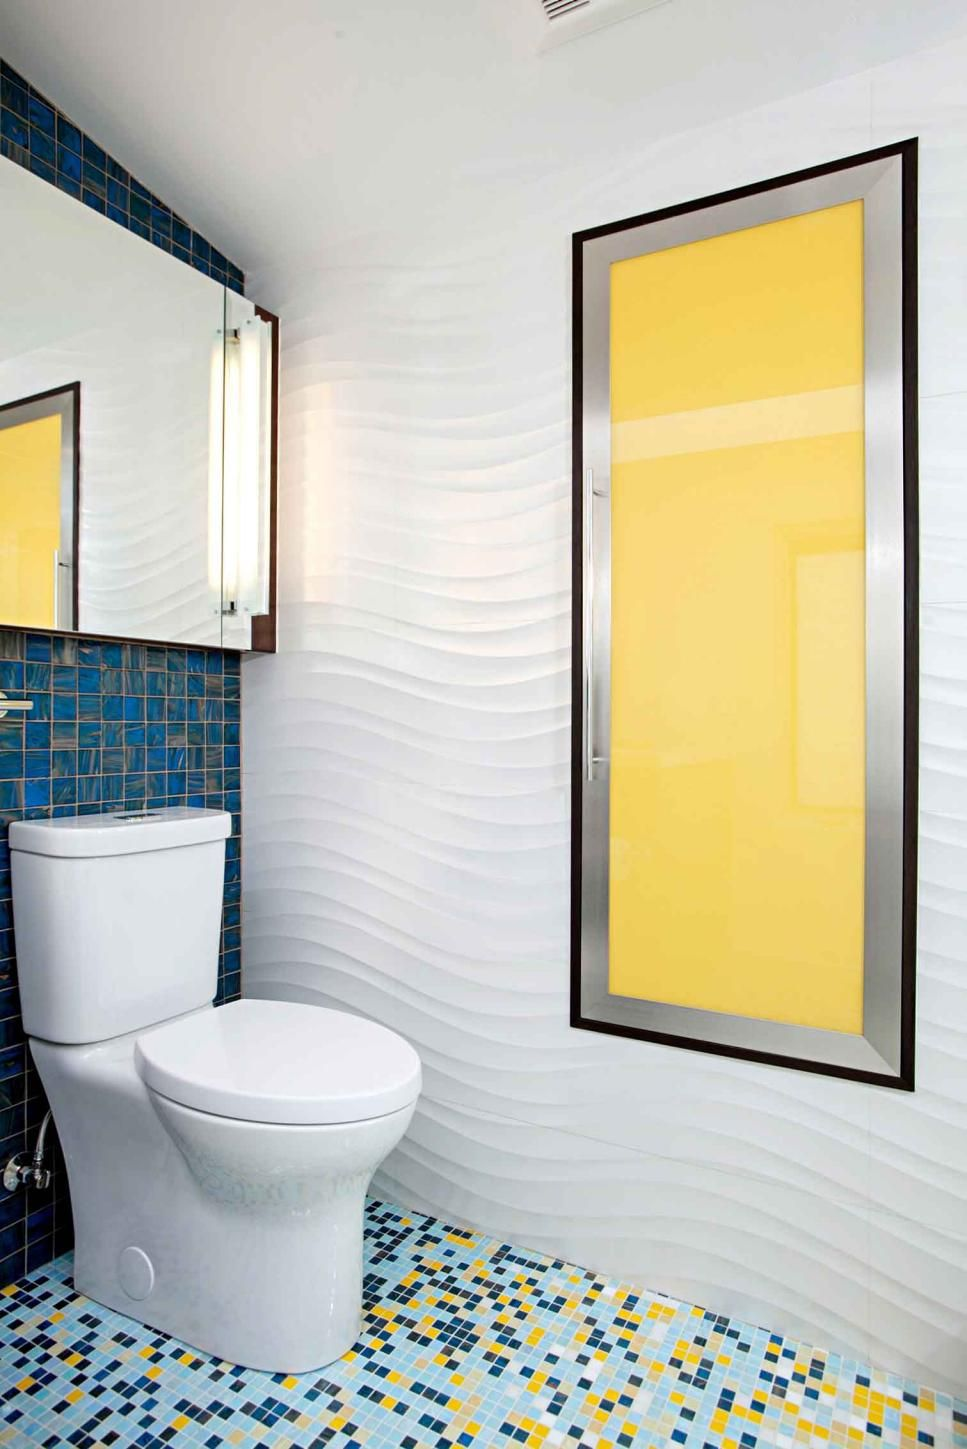 A White Textured Wave Effect On One Wall And A Blue And Beige